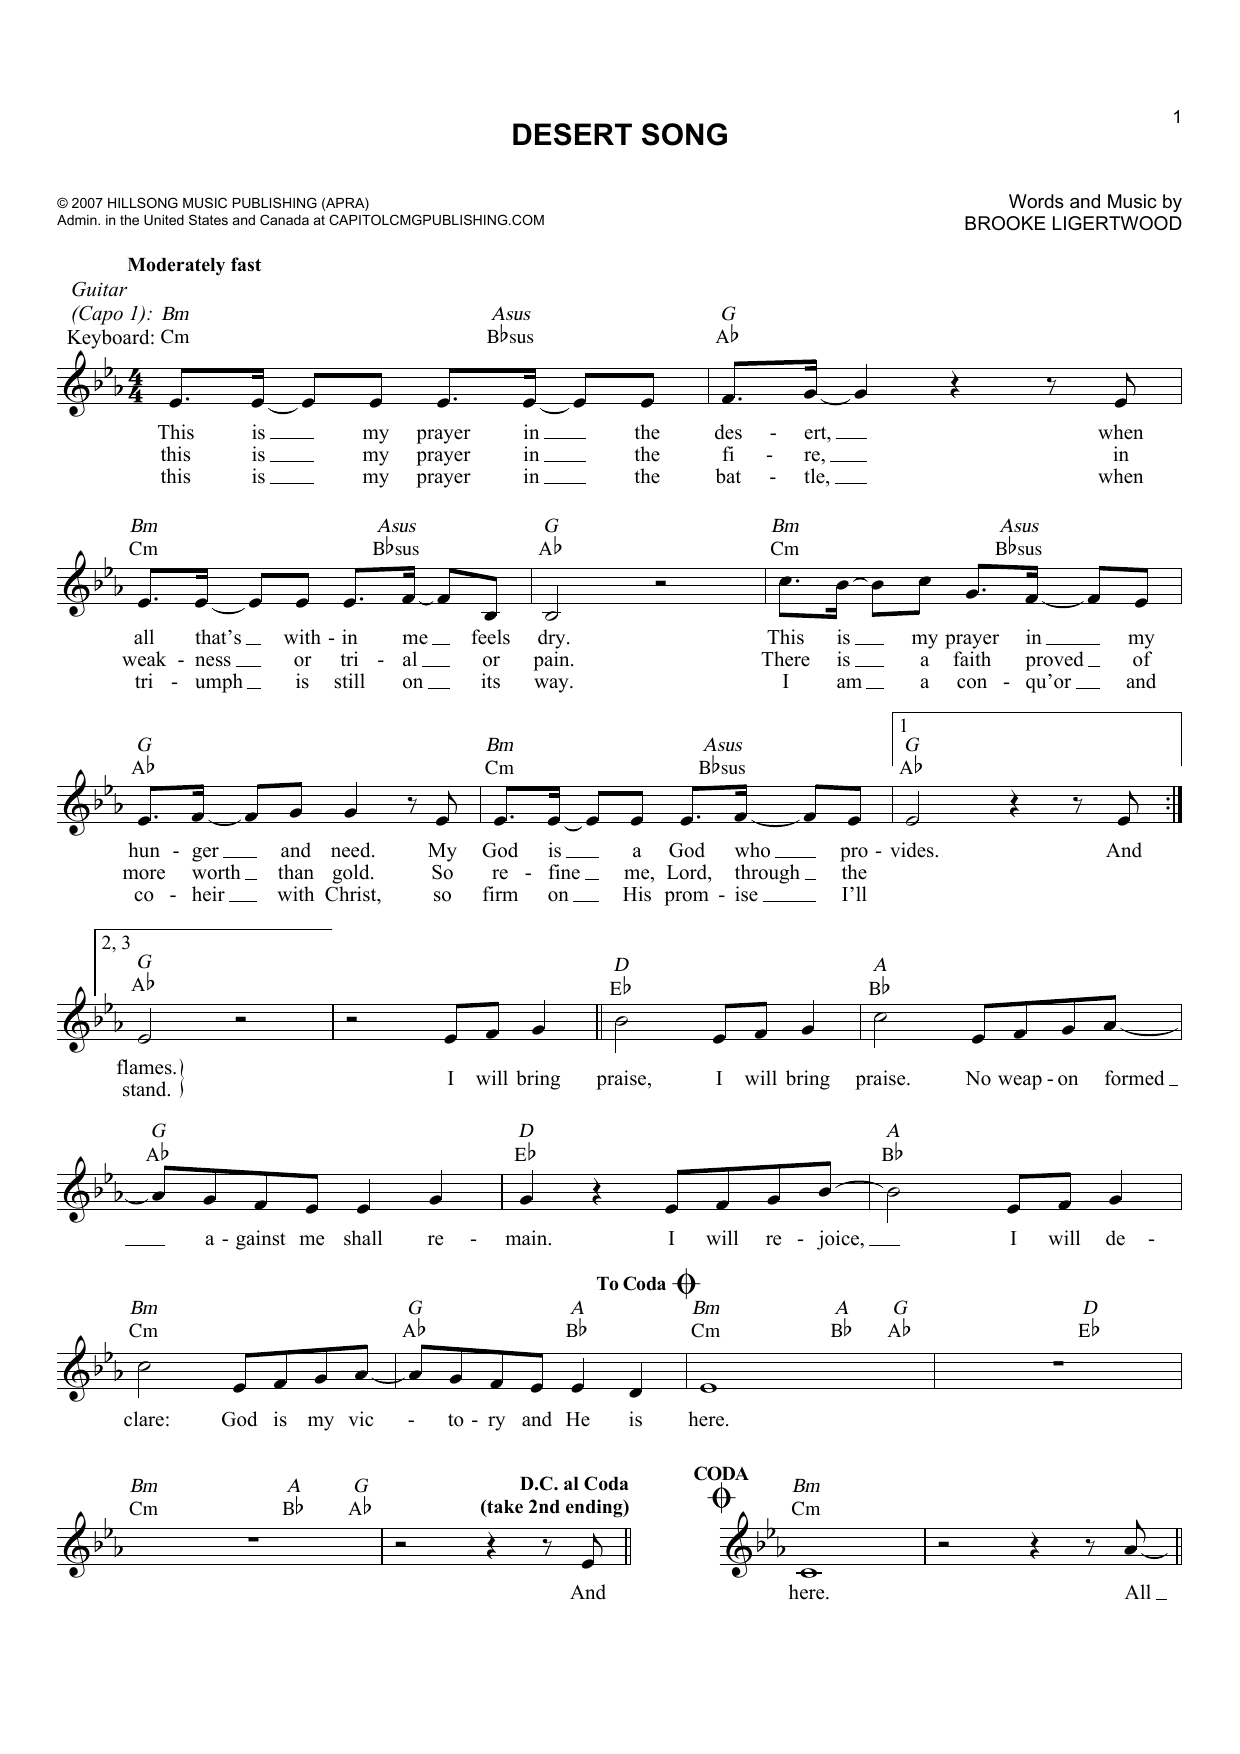 Brooke Ligertwood Desert Song sheet music notes and chords. Download Printable PDF.